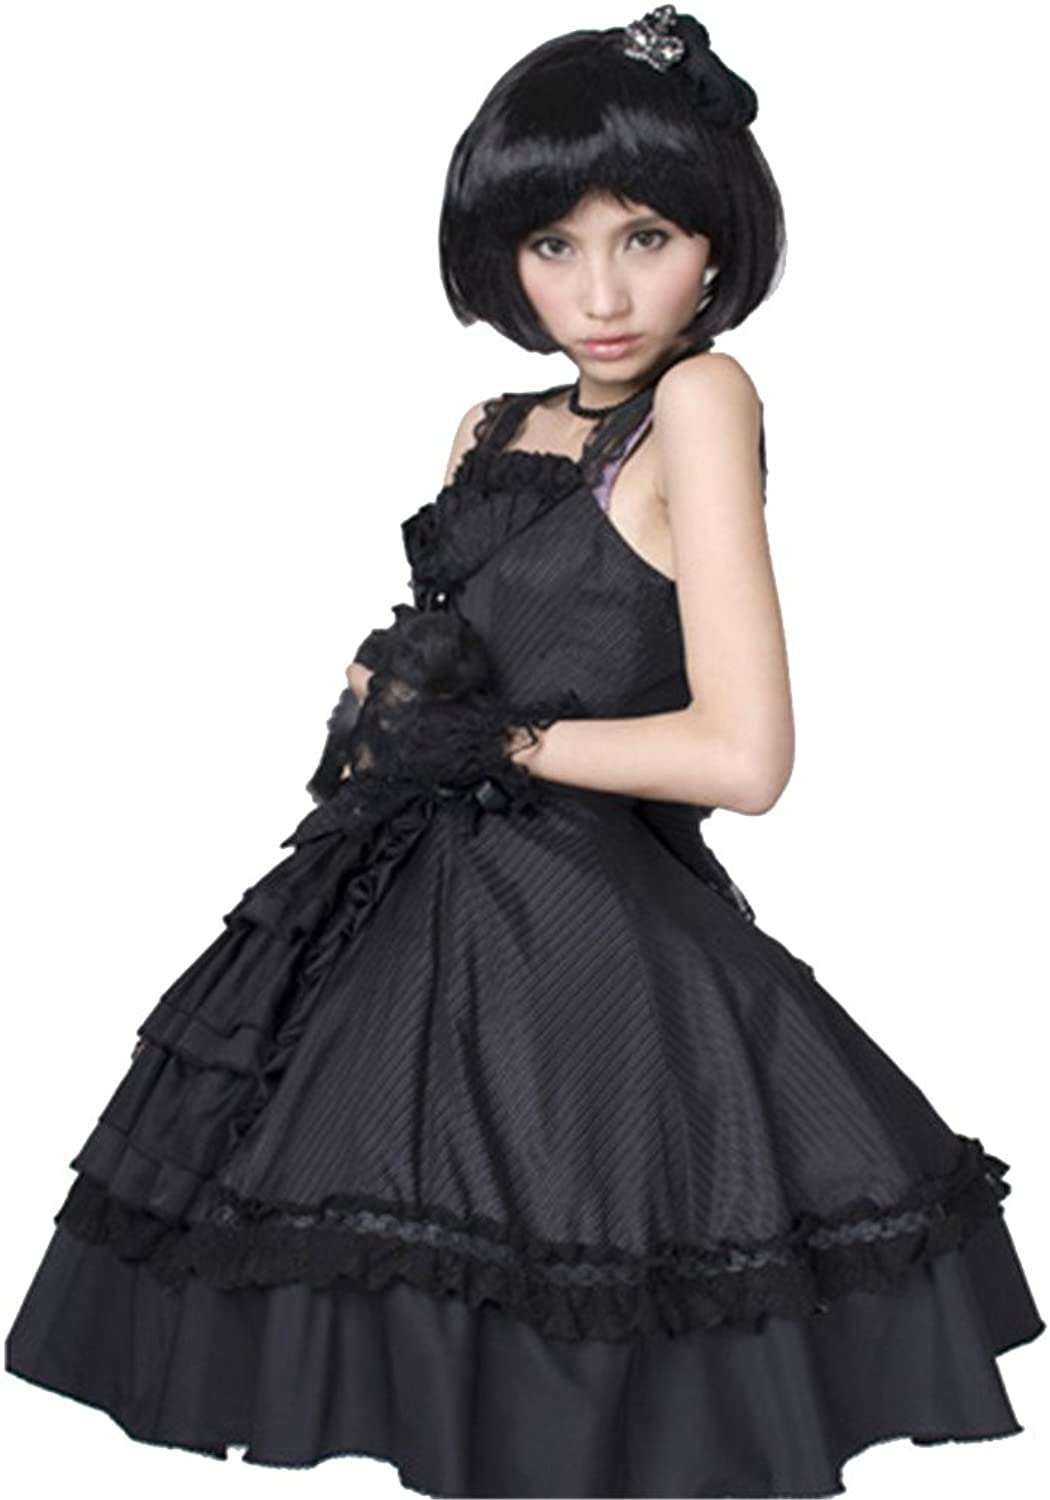 Punk Gothic Women Lolita Dress A Line Mini Skirt Sleeveless Renaissance Dress